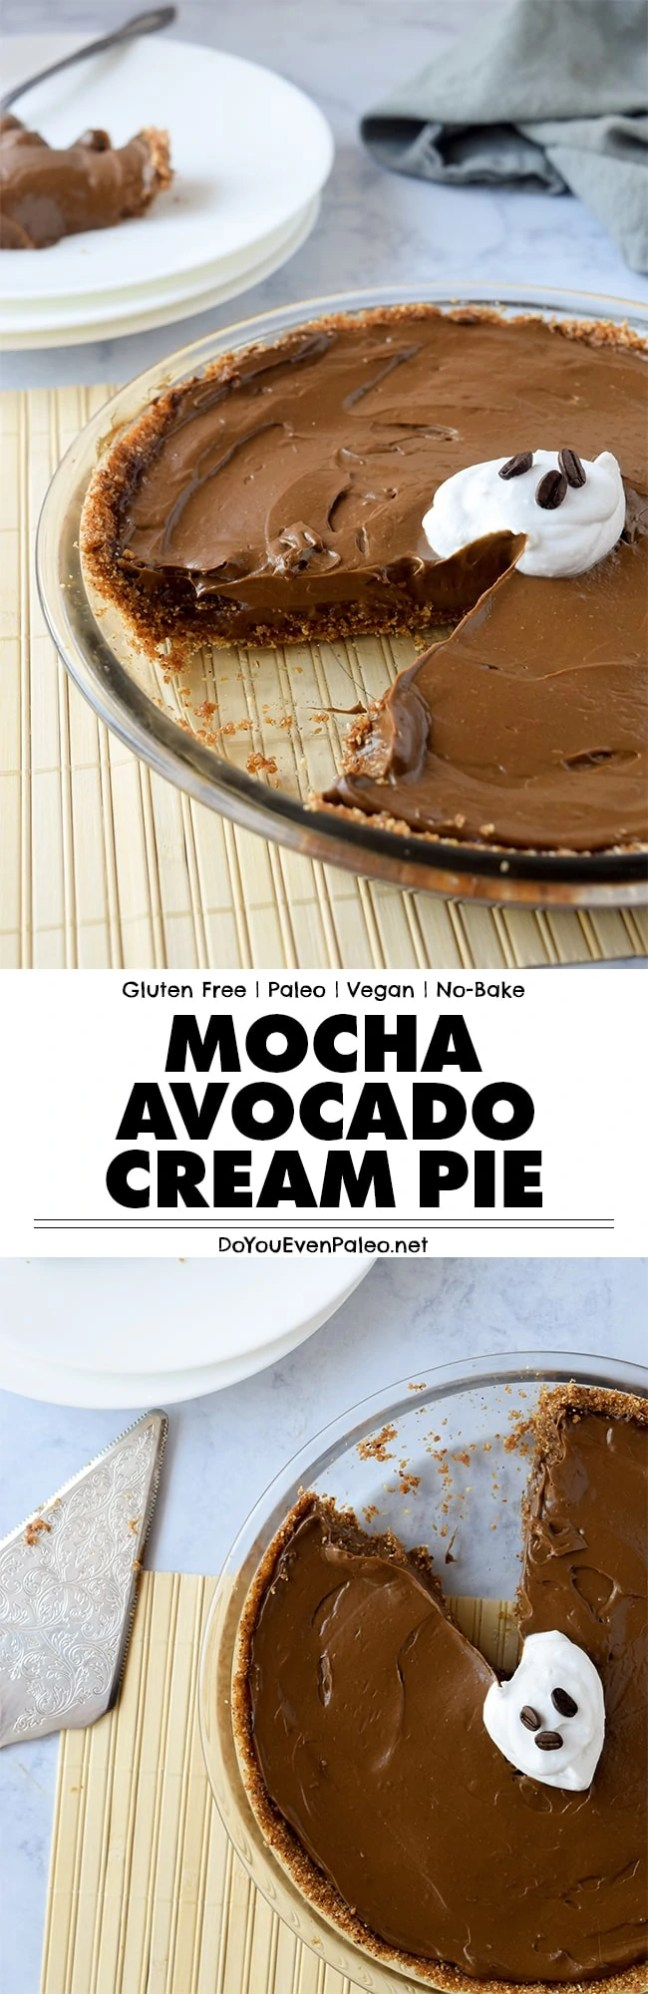 Mocha Avocado Cream Pie - a simple, no bake dessert recipe featuring avocados, chocolate and cold brew coffee! | DoYouEvenPaleo.net